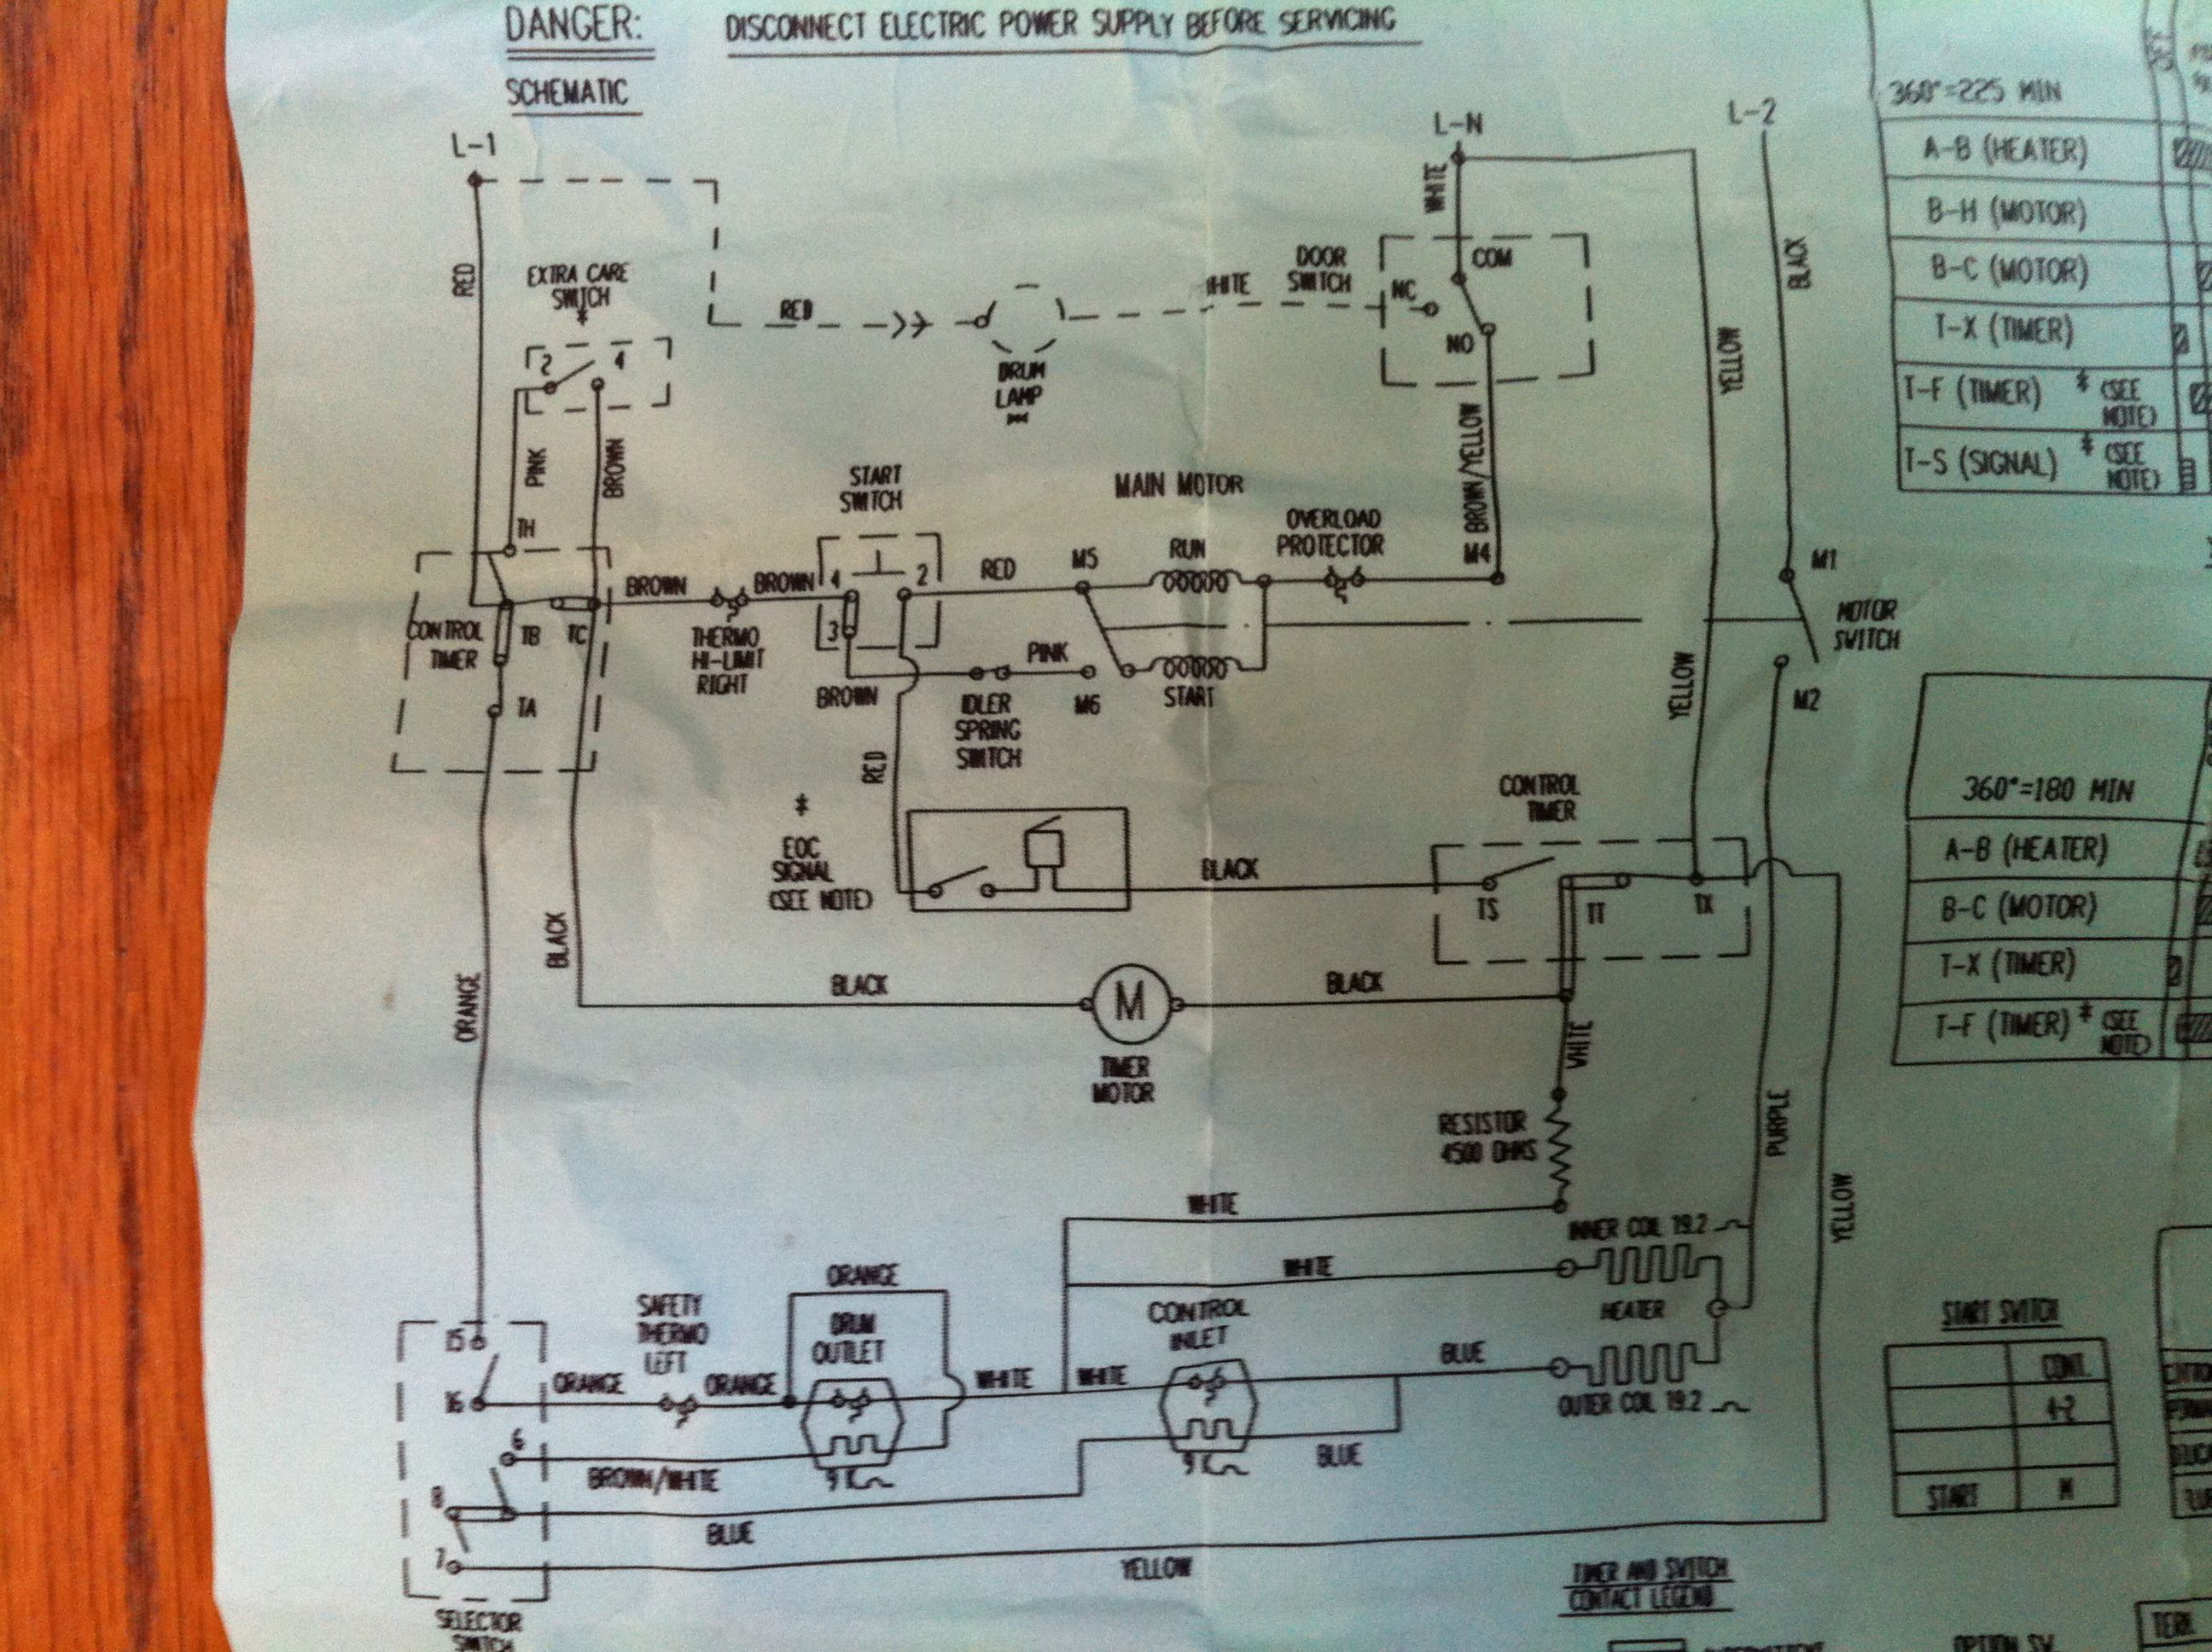 Filter queen wiring diagram free download wiring diagrams schematics wireing diagrams electric dryers blow drying central vac wiring 220 volt electric dryer wiring diagram by sanja asfbconference2016 Image collections